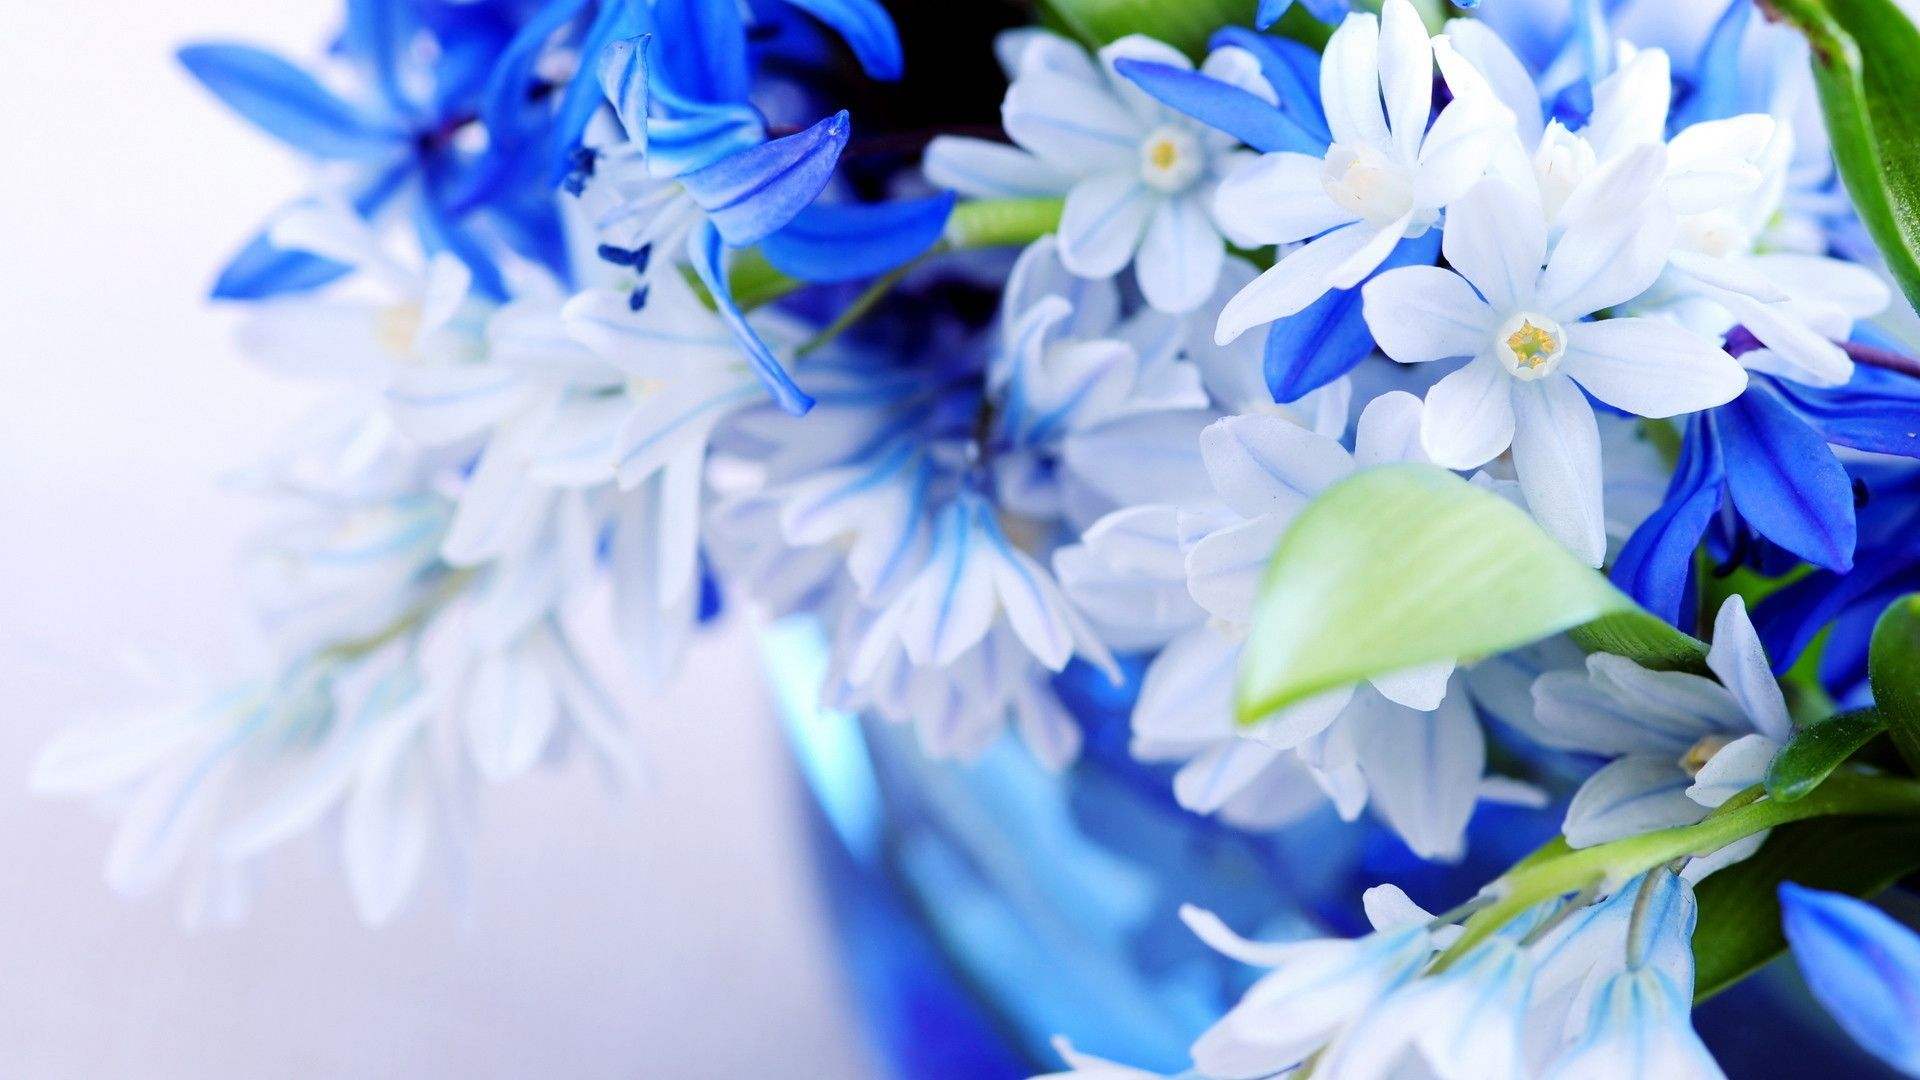 Background Images Full Hd Flowers